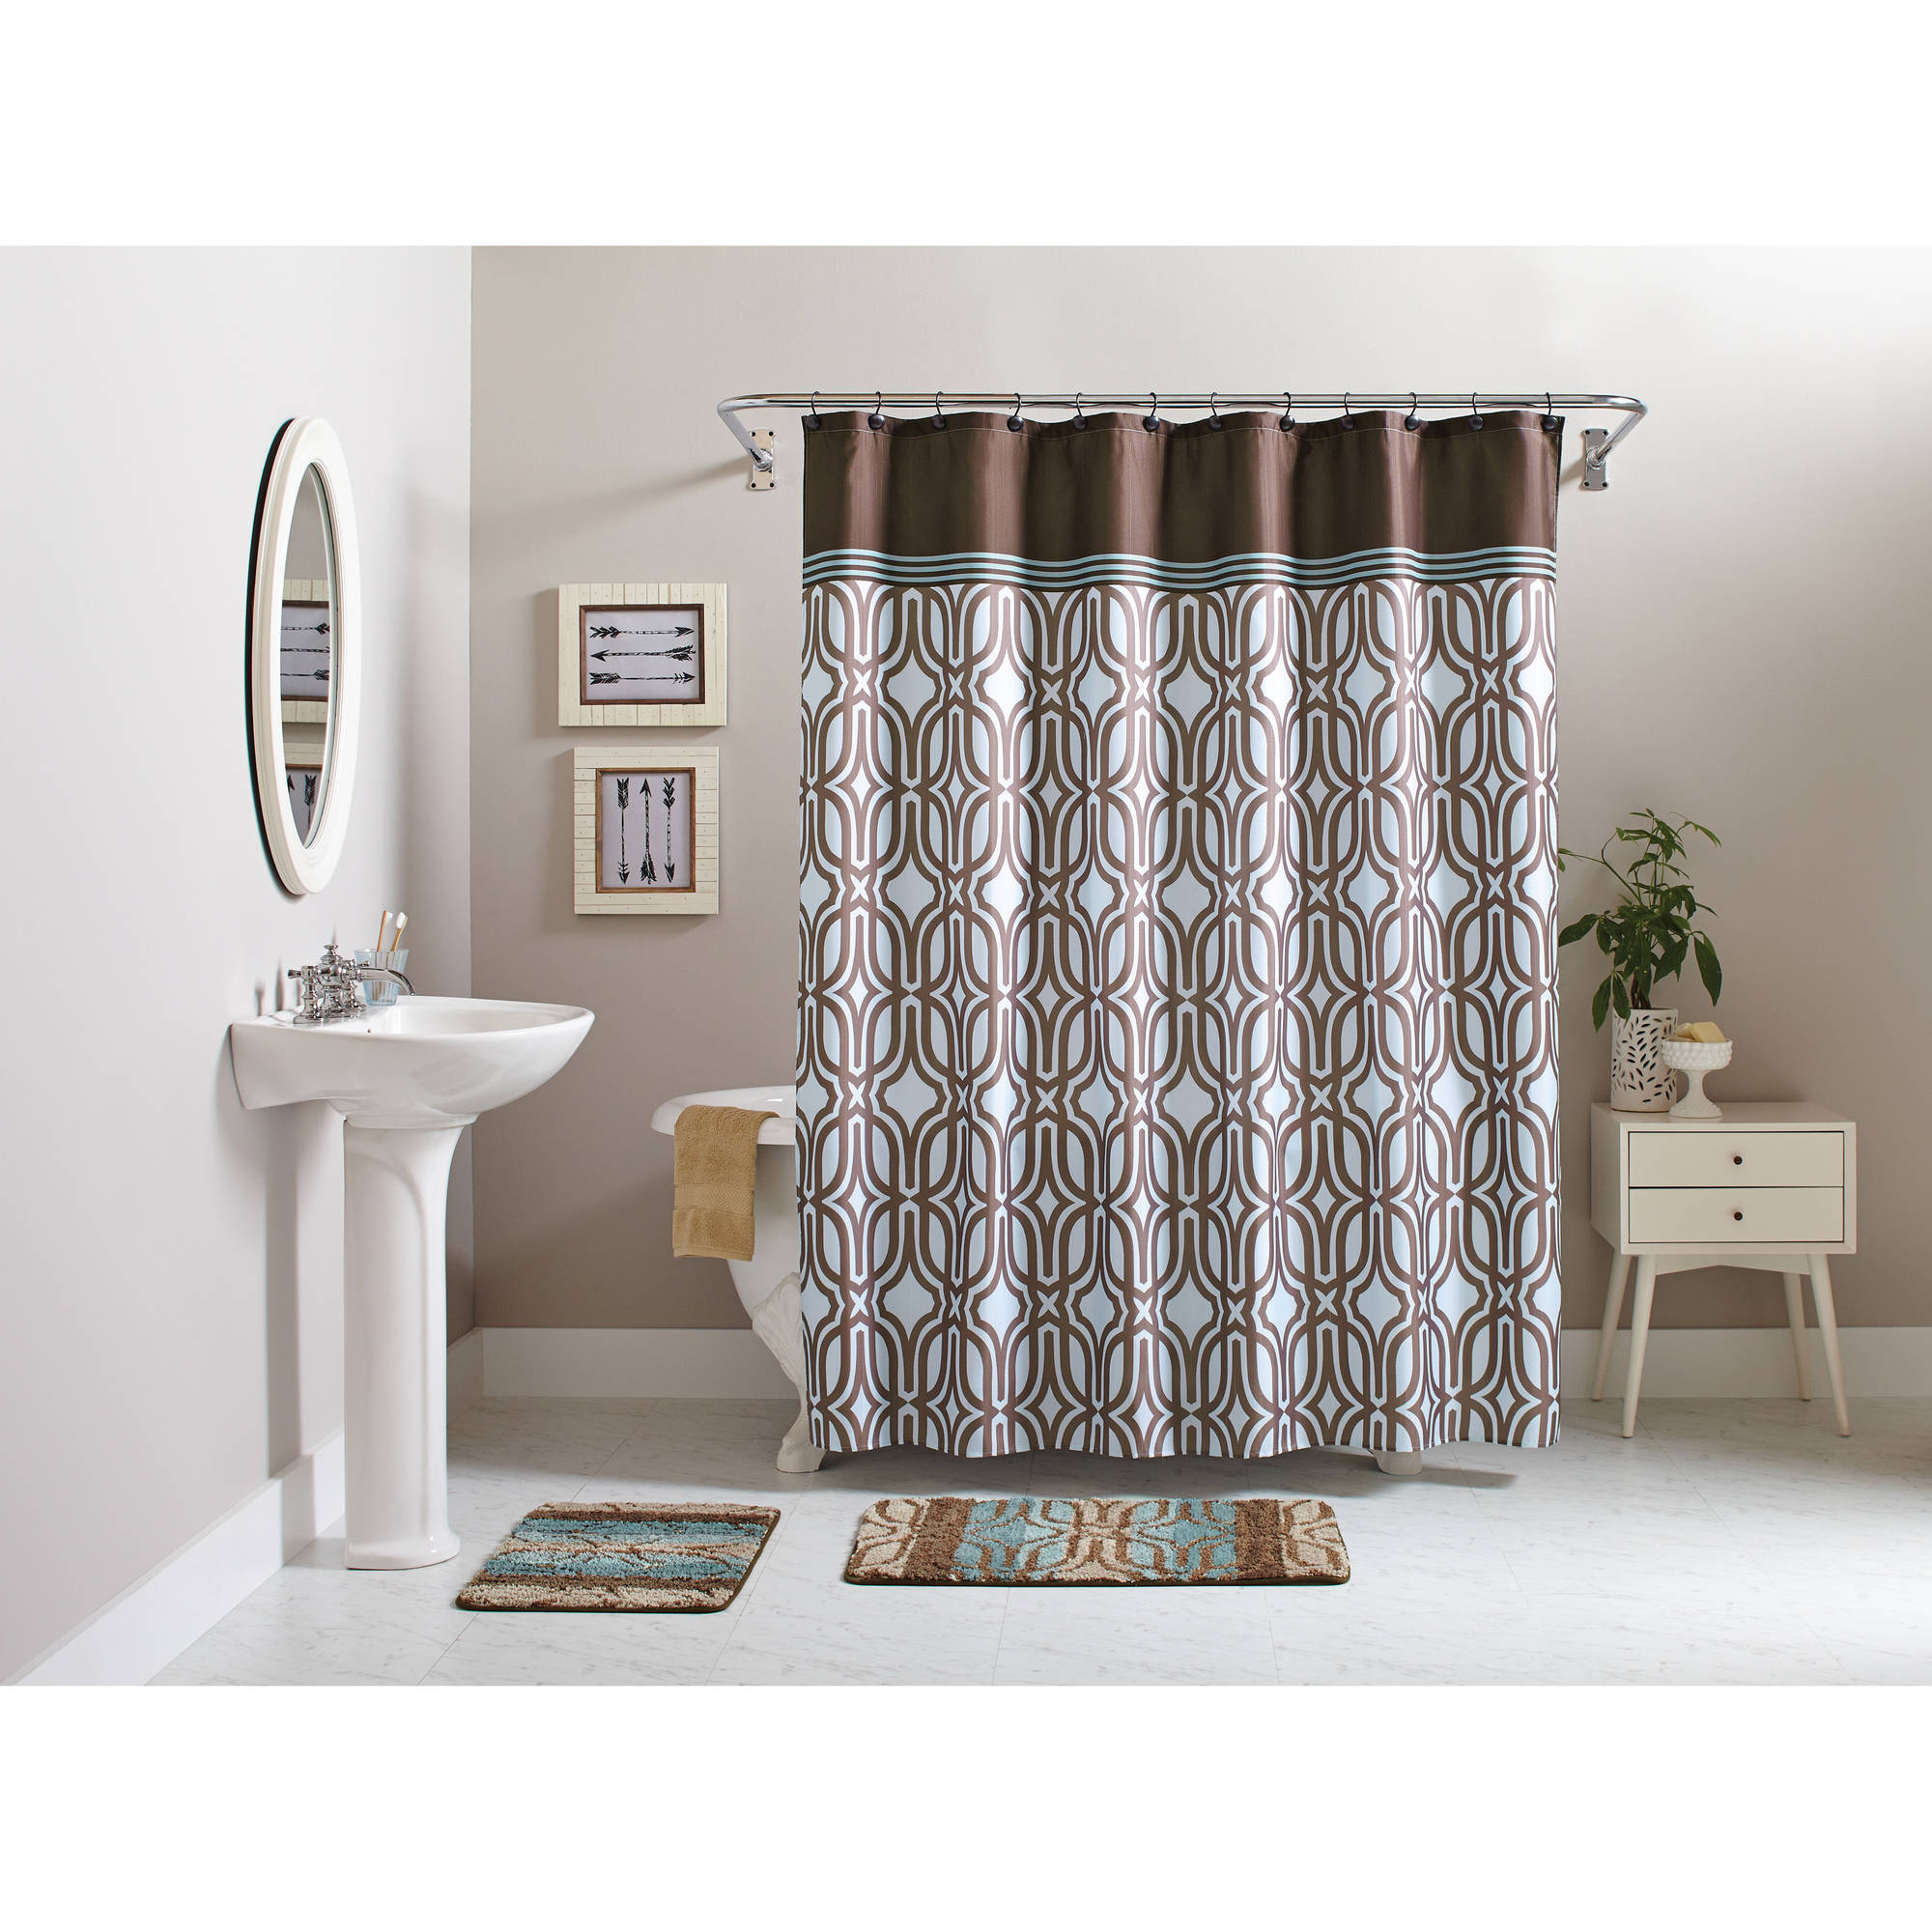 Better Homes and Gardens 15-Piece Geometric Bath Set, Shower Curtain ...